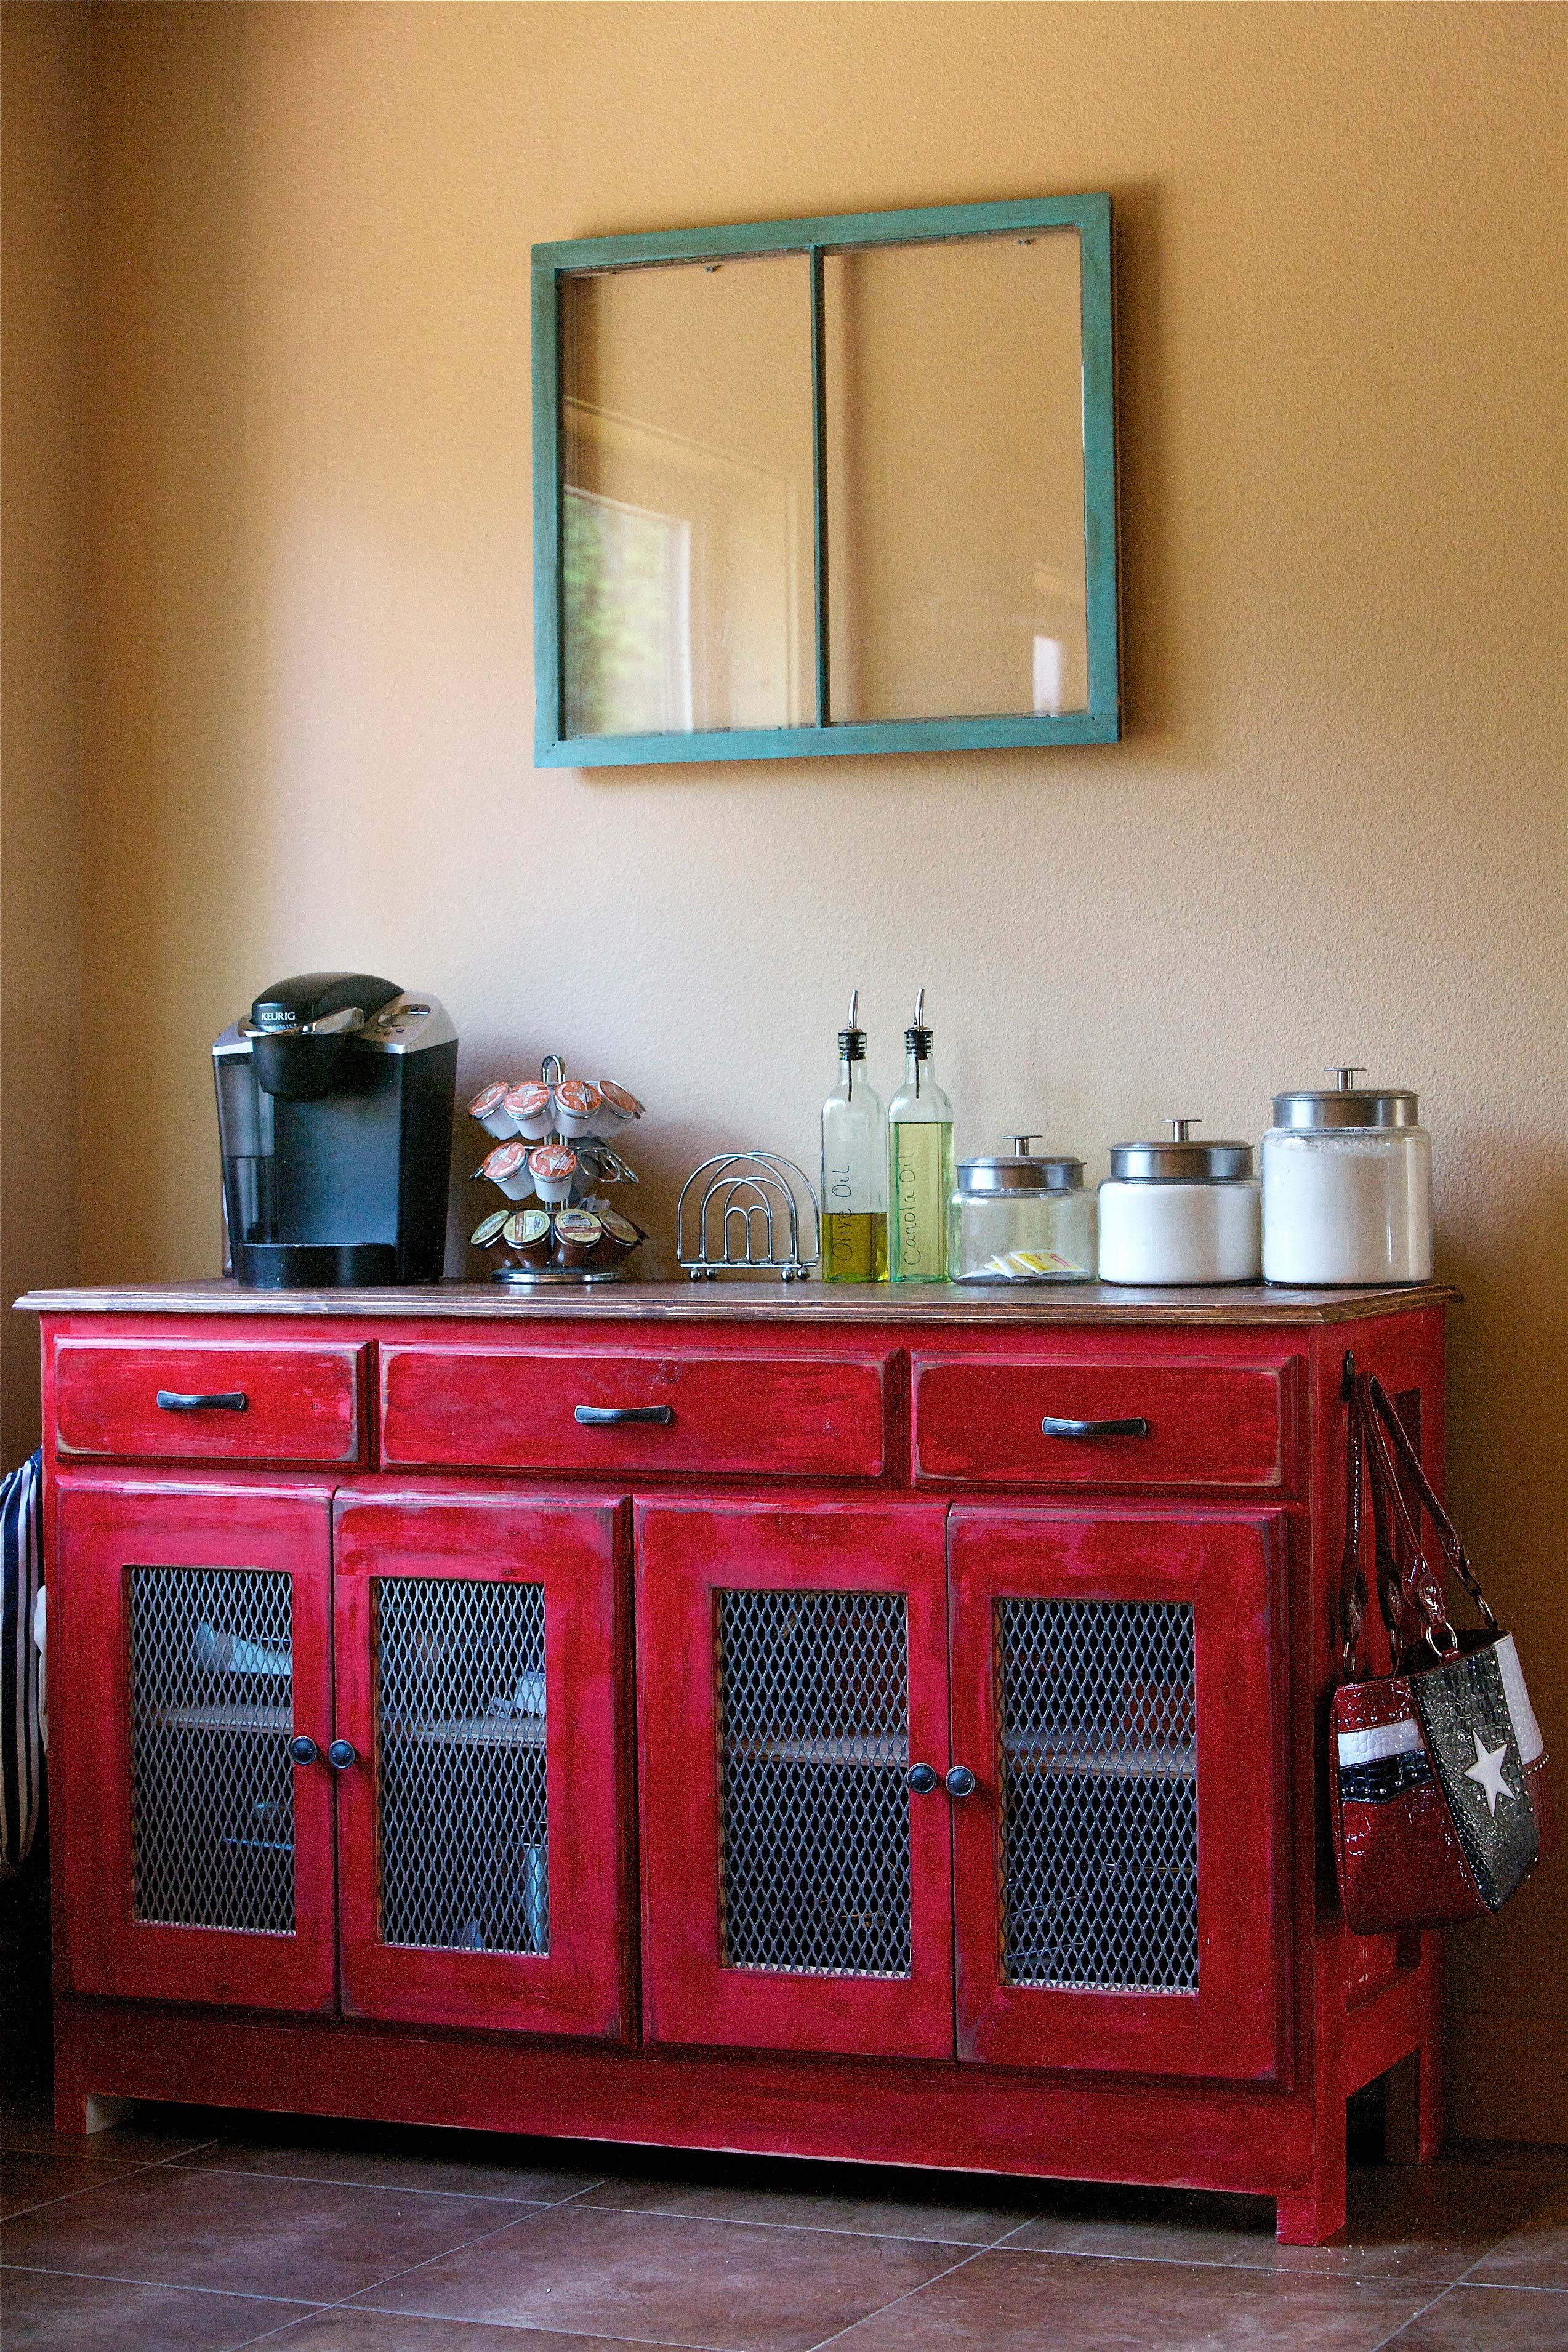 Do It Yourself Kitchen: Do It Yourself Home Projects From Ana White